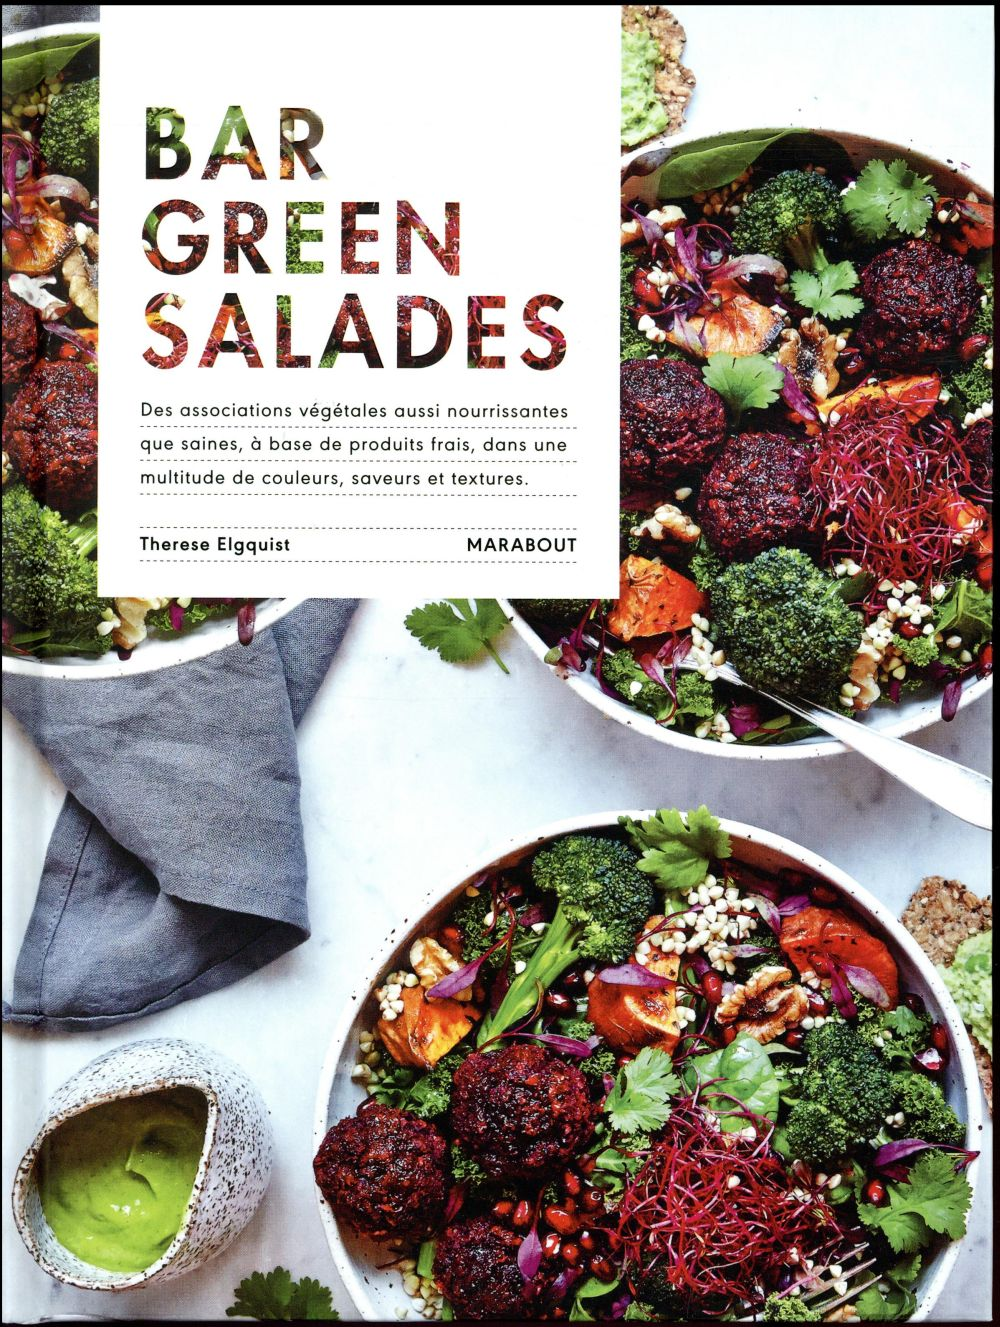 BAR GREEN SALADES ELGQUIST THERESE MARABOUT